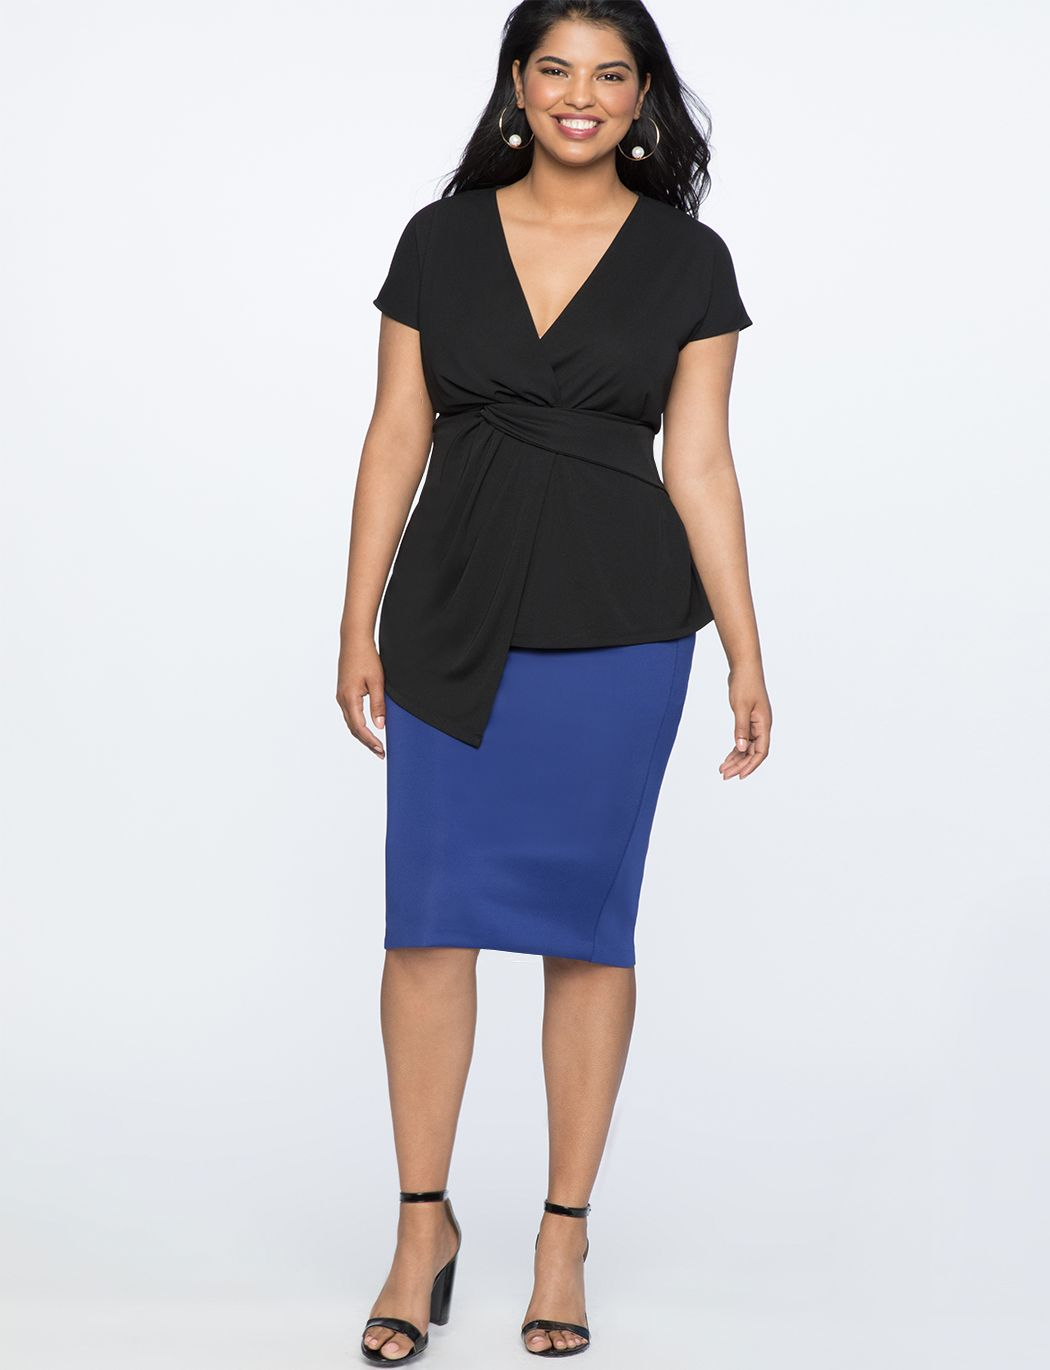 28d7d9a2518212 Twist Front Top | Women's Plus Size Tops | Clothes Shopping Sites ...